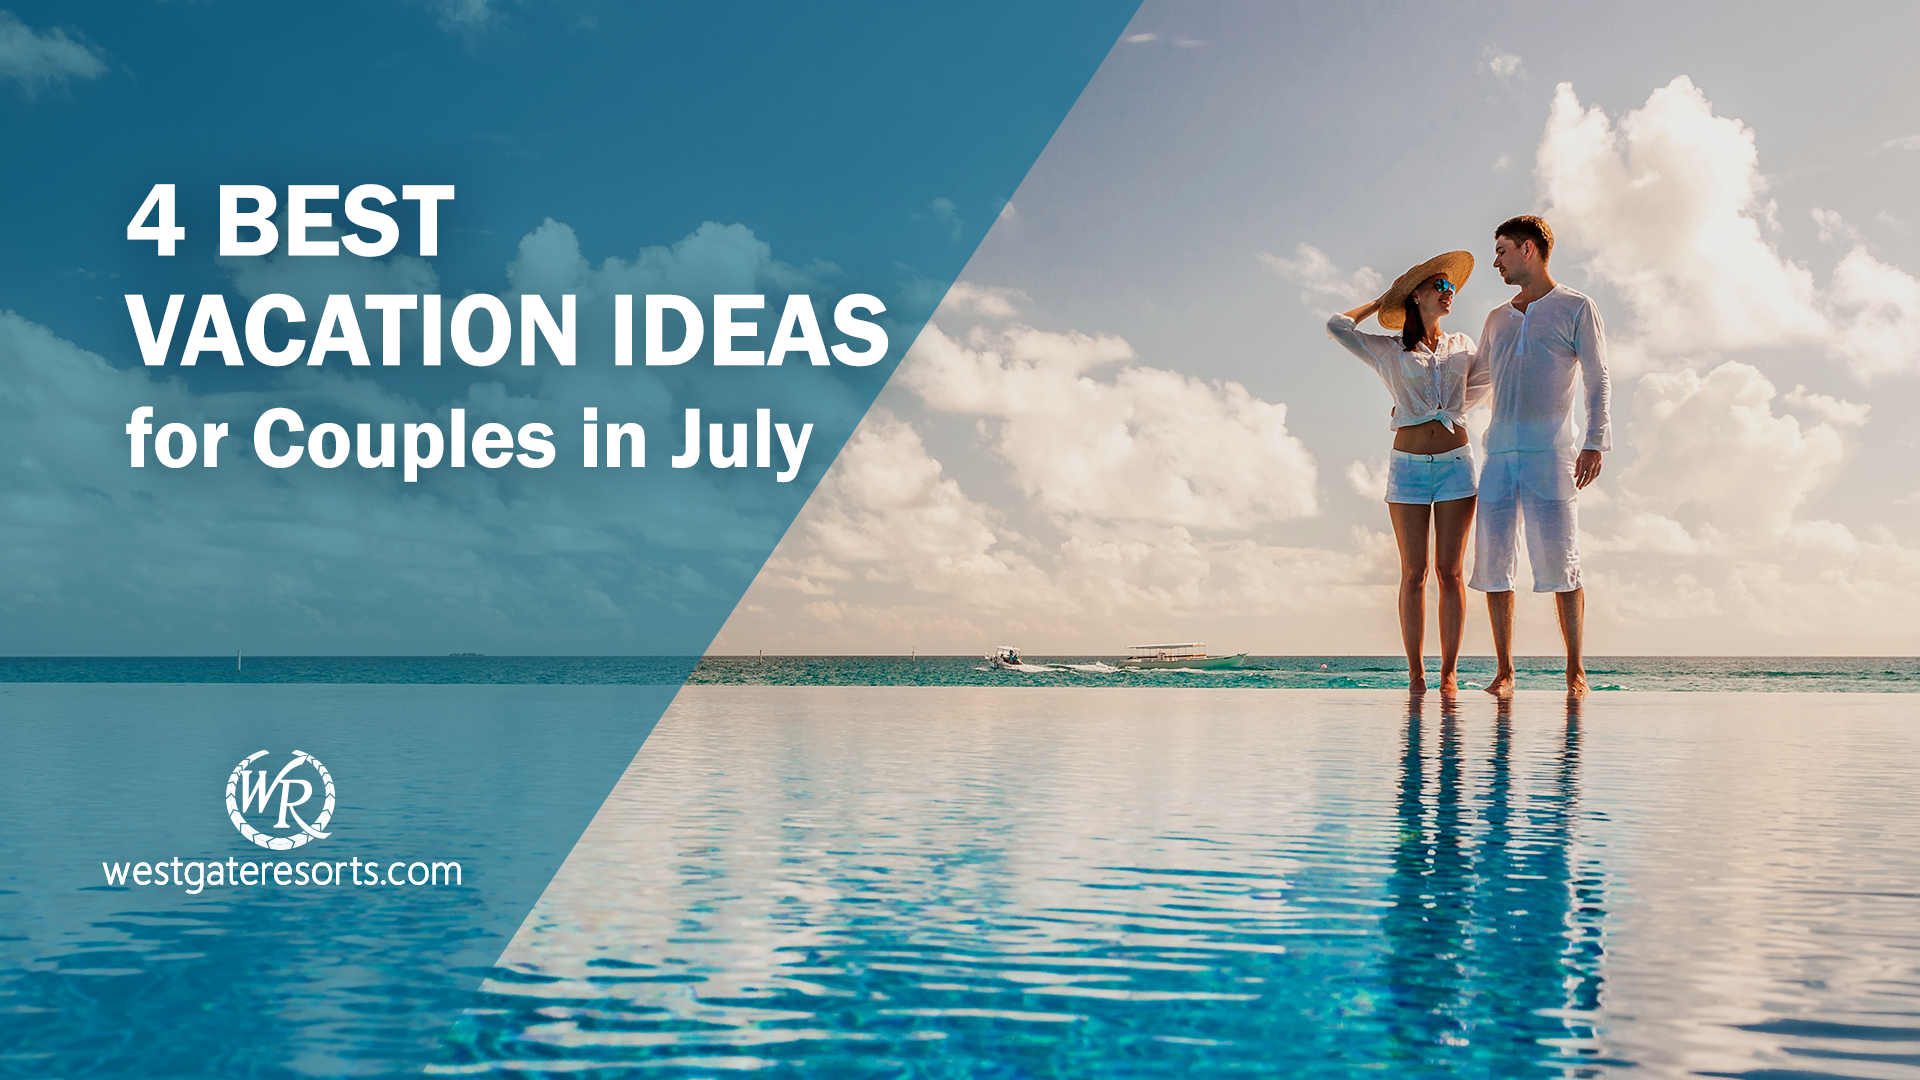 4 Best Vacation Ideas for Couples in July | Best Vacation Spots in July | Westgate Resorts